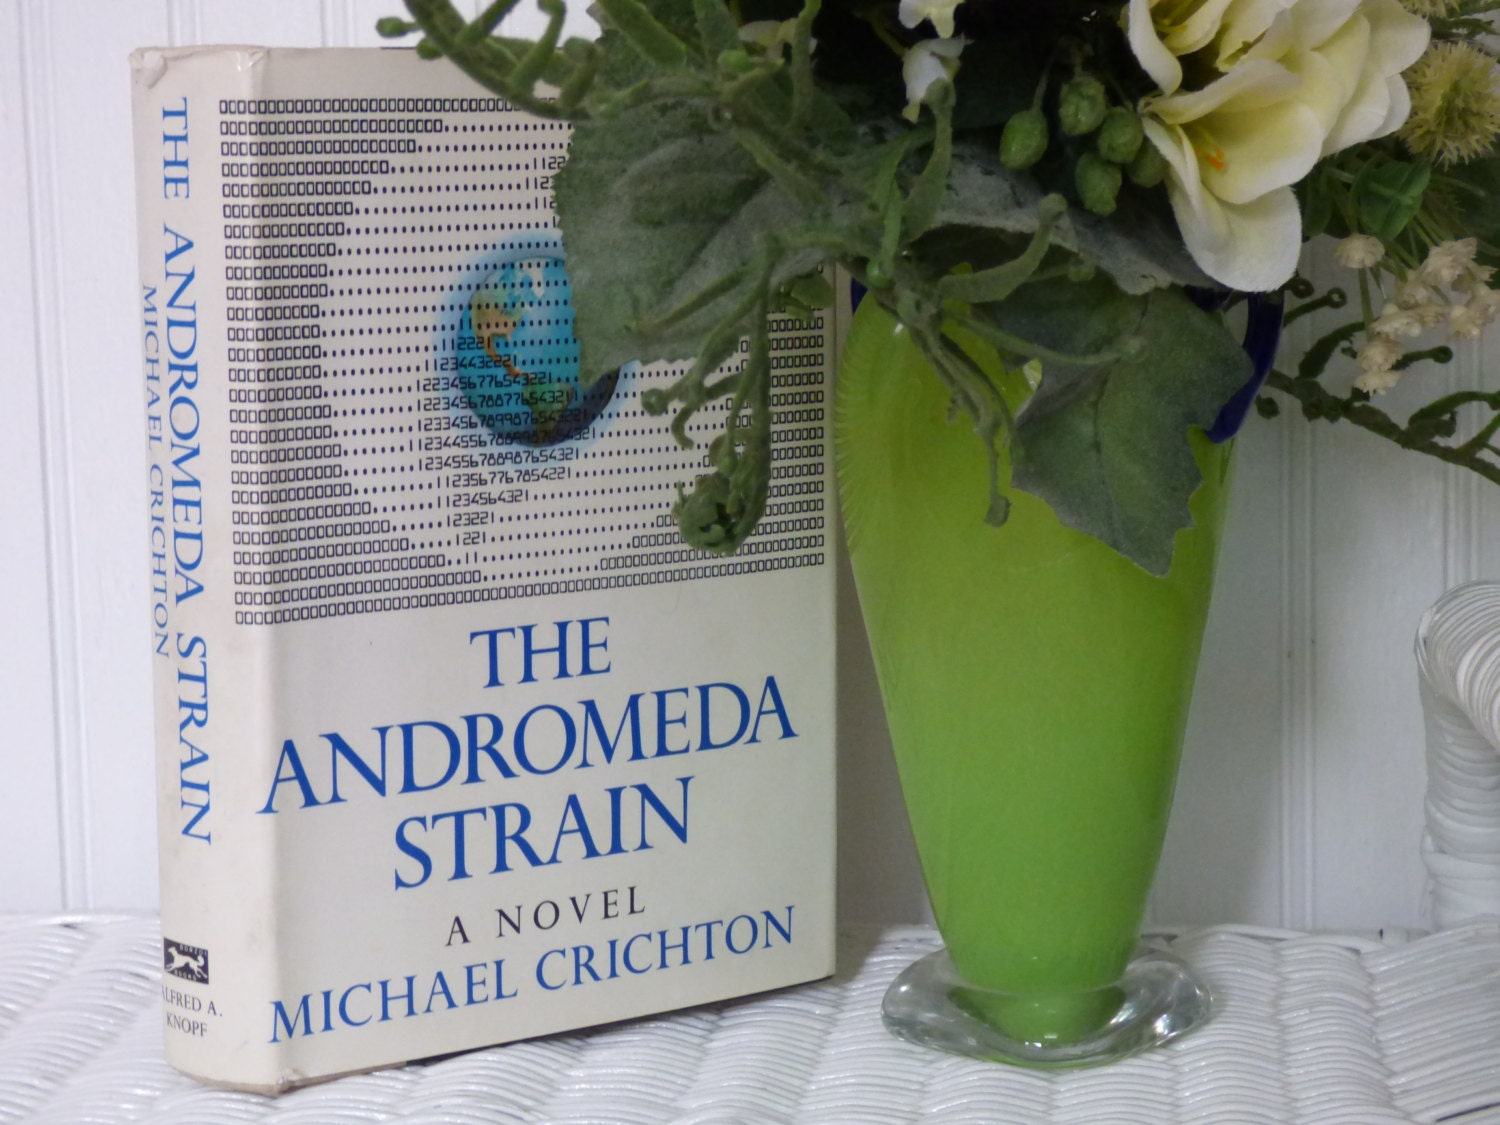 a book analysis of the andromeda strain by michael crichton The andromeda strain by michael crichton - view book on bookshelves at online book club - bookshelves is an awesome, free web app that lets you easily save and share lists of books and see what books are trending.